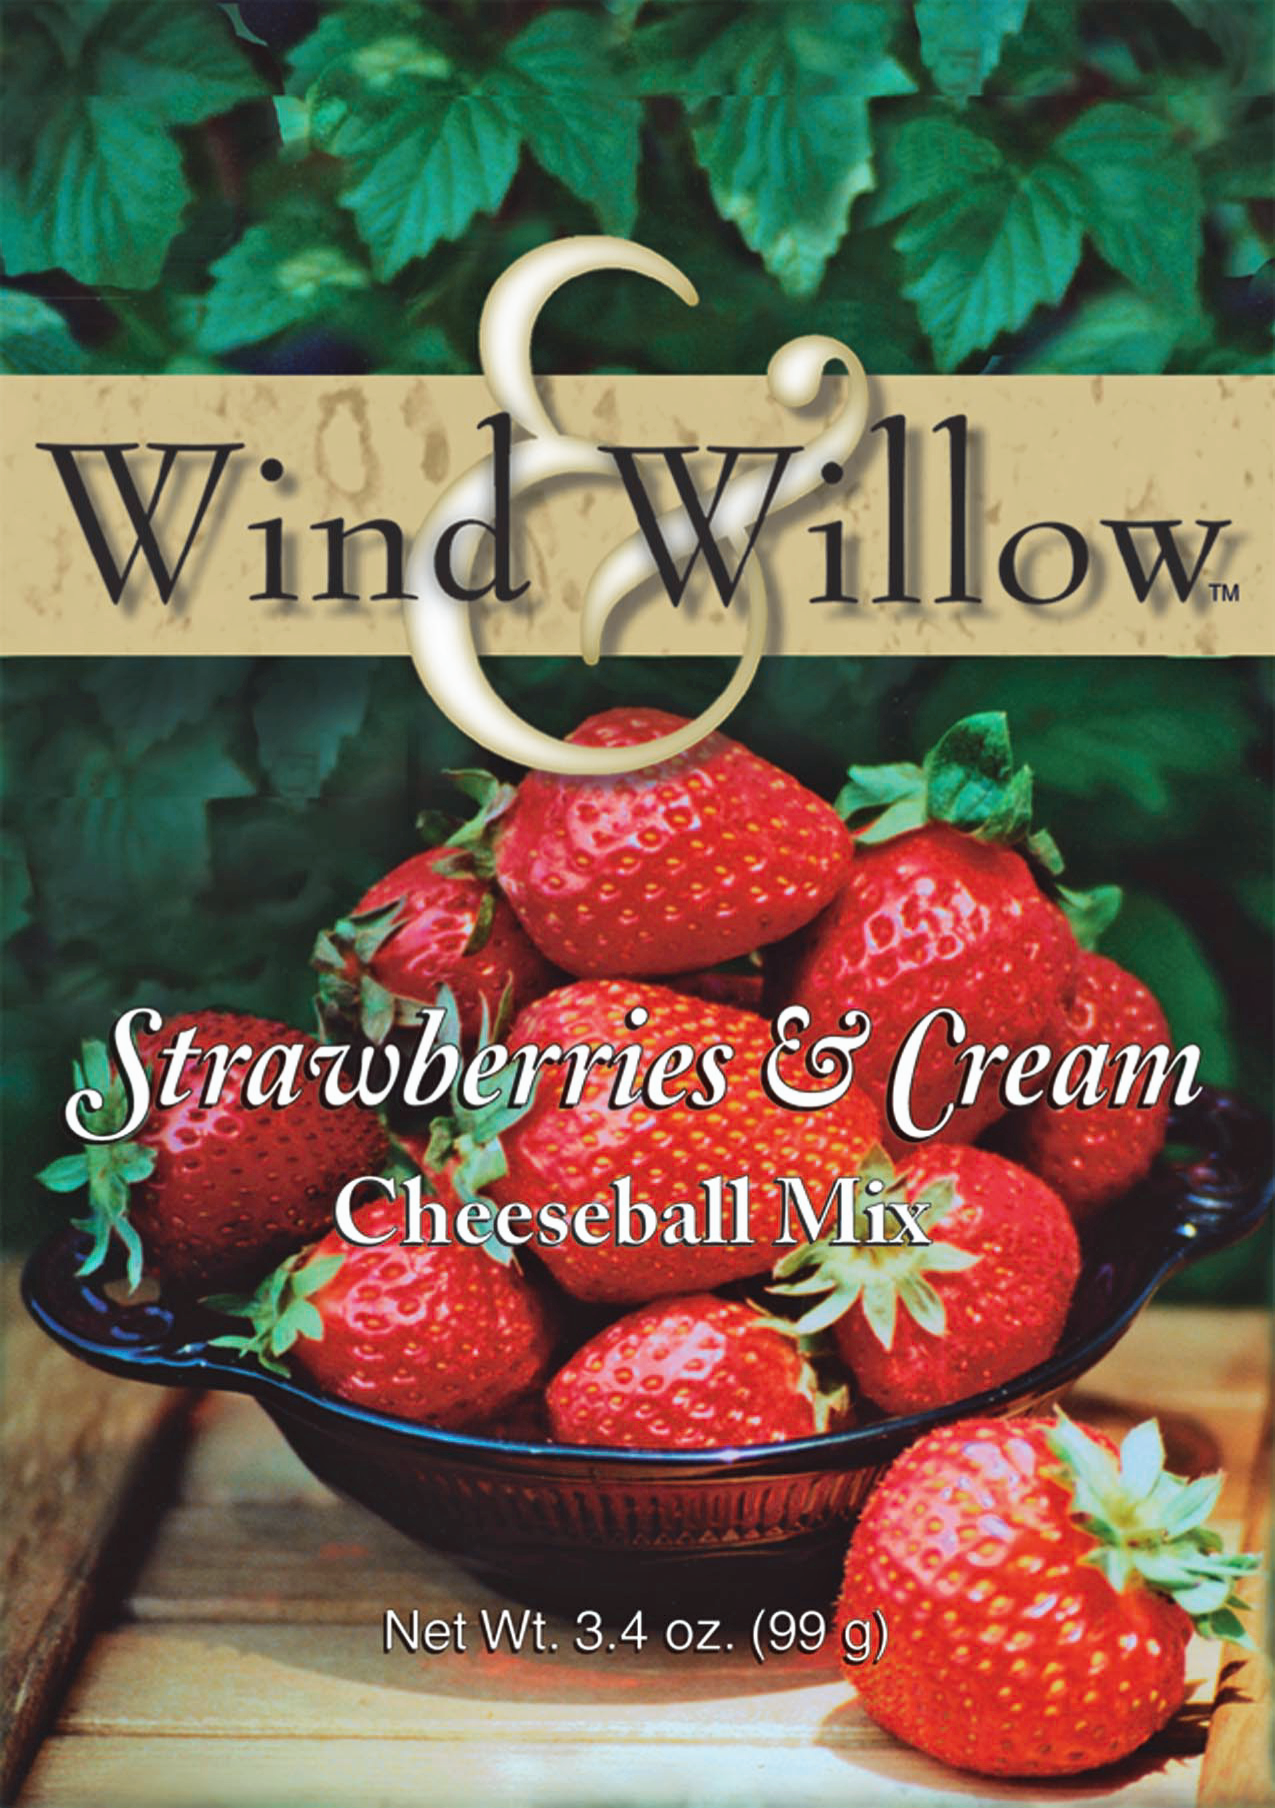 Wind & Willow Strawberries & Cream Cheeseball Mix.  This favorite cheeseball has real strawberry pieces right in the mix. A terrific dessert cheeseball.